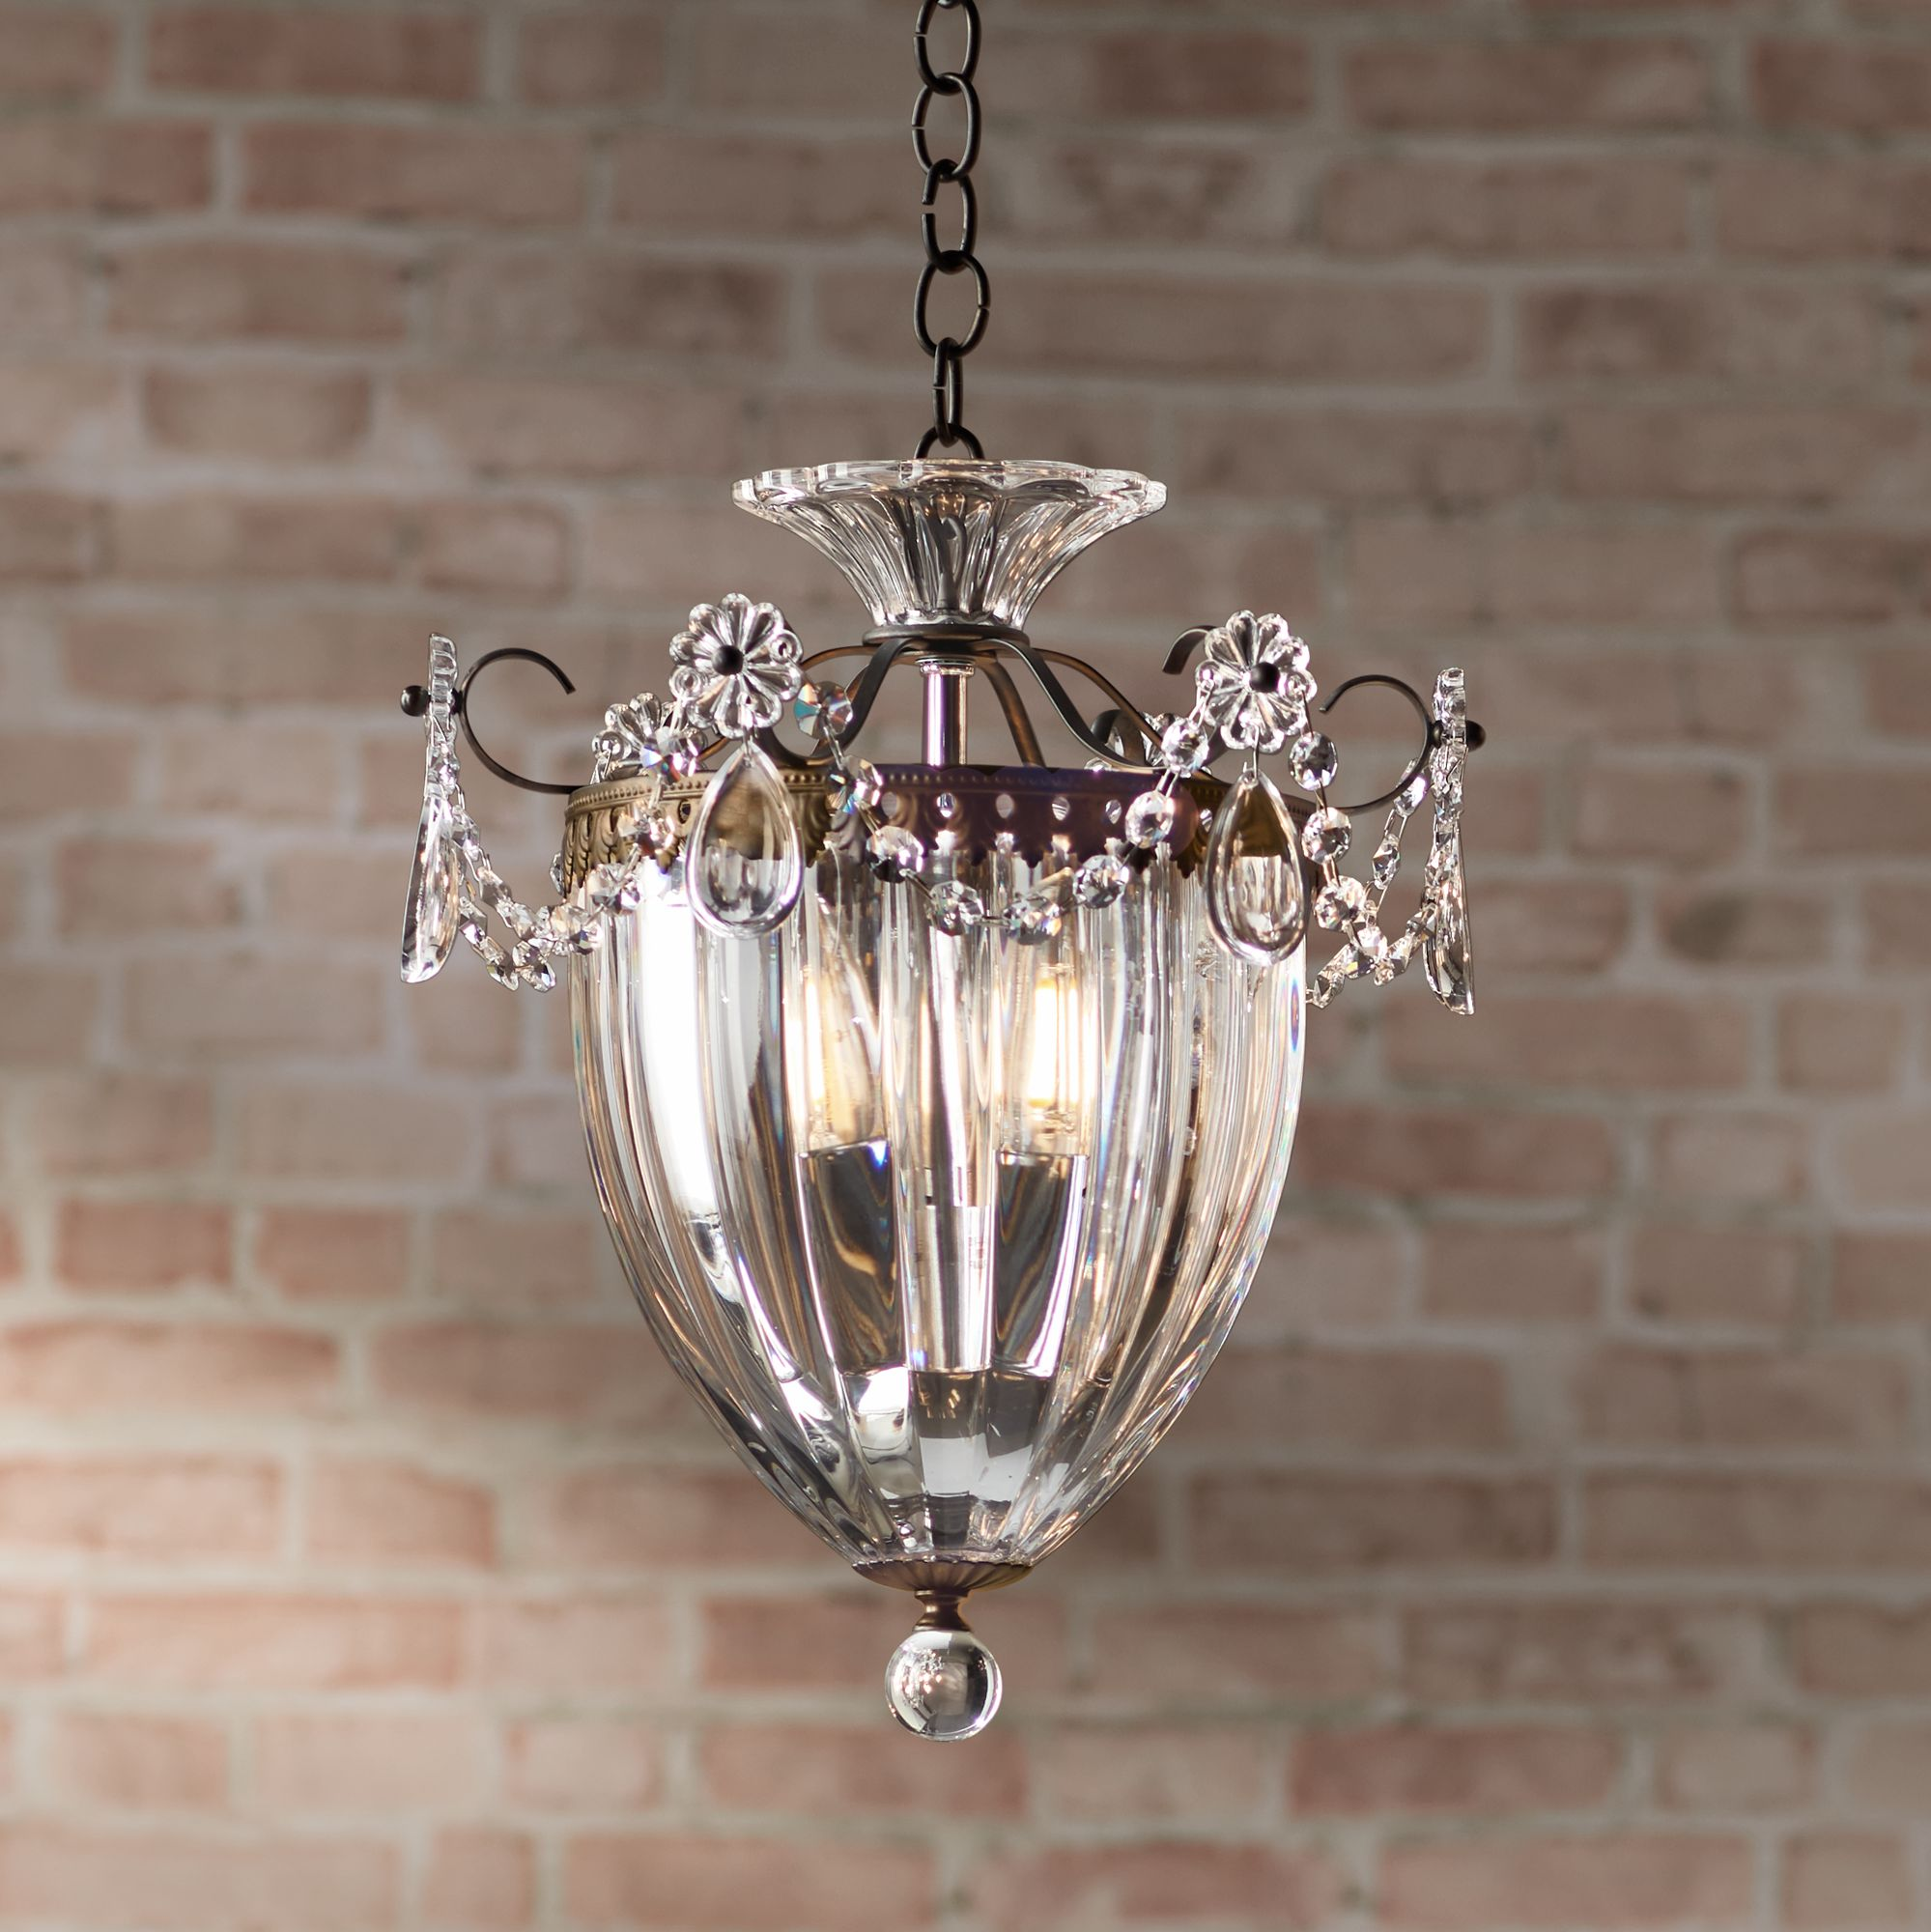 Mini crystal chandelier for bathroom custom set furniture for Small chandeliers for bathrooms